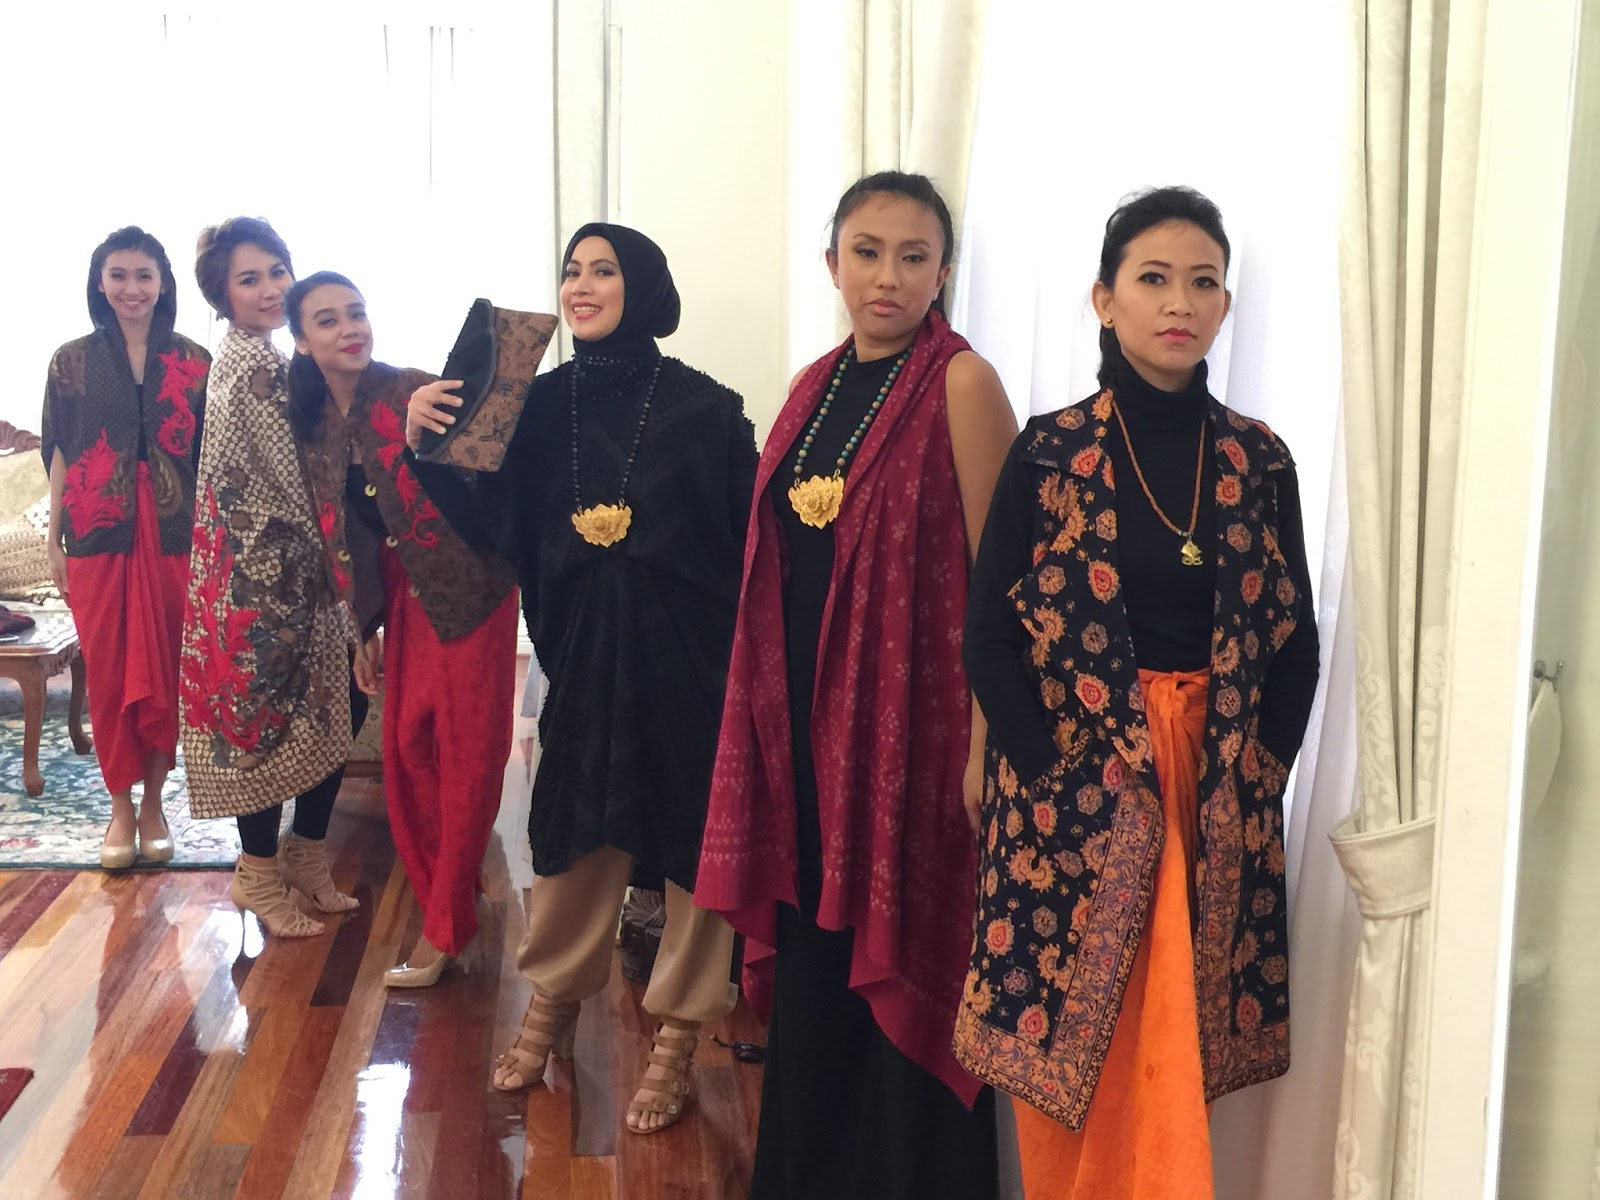 Happy and ecstatic faces after shopping Batik Chic latest collection